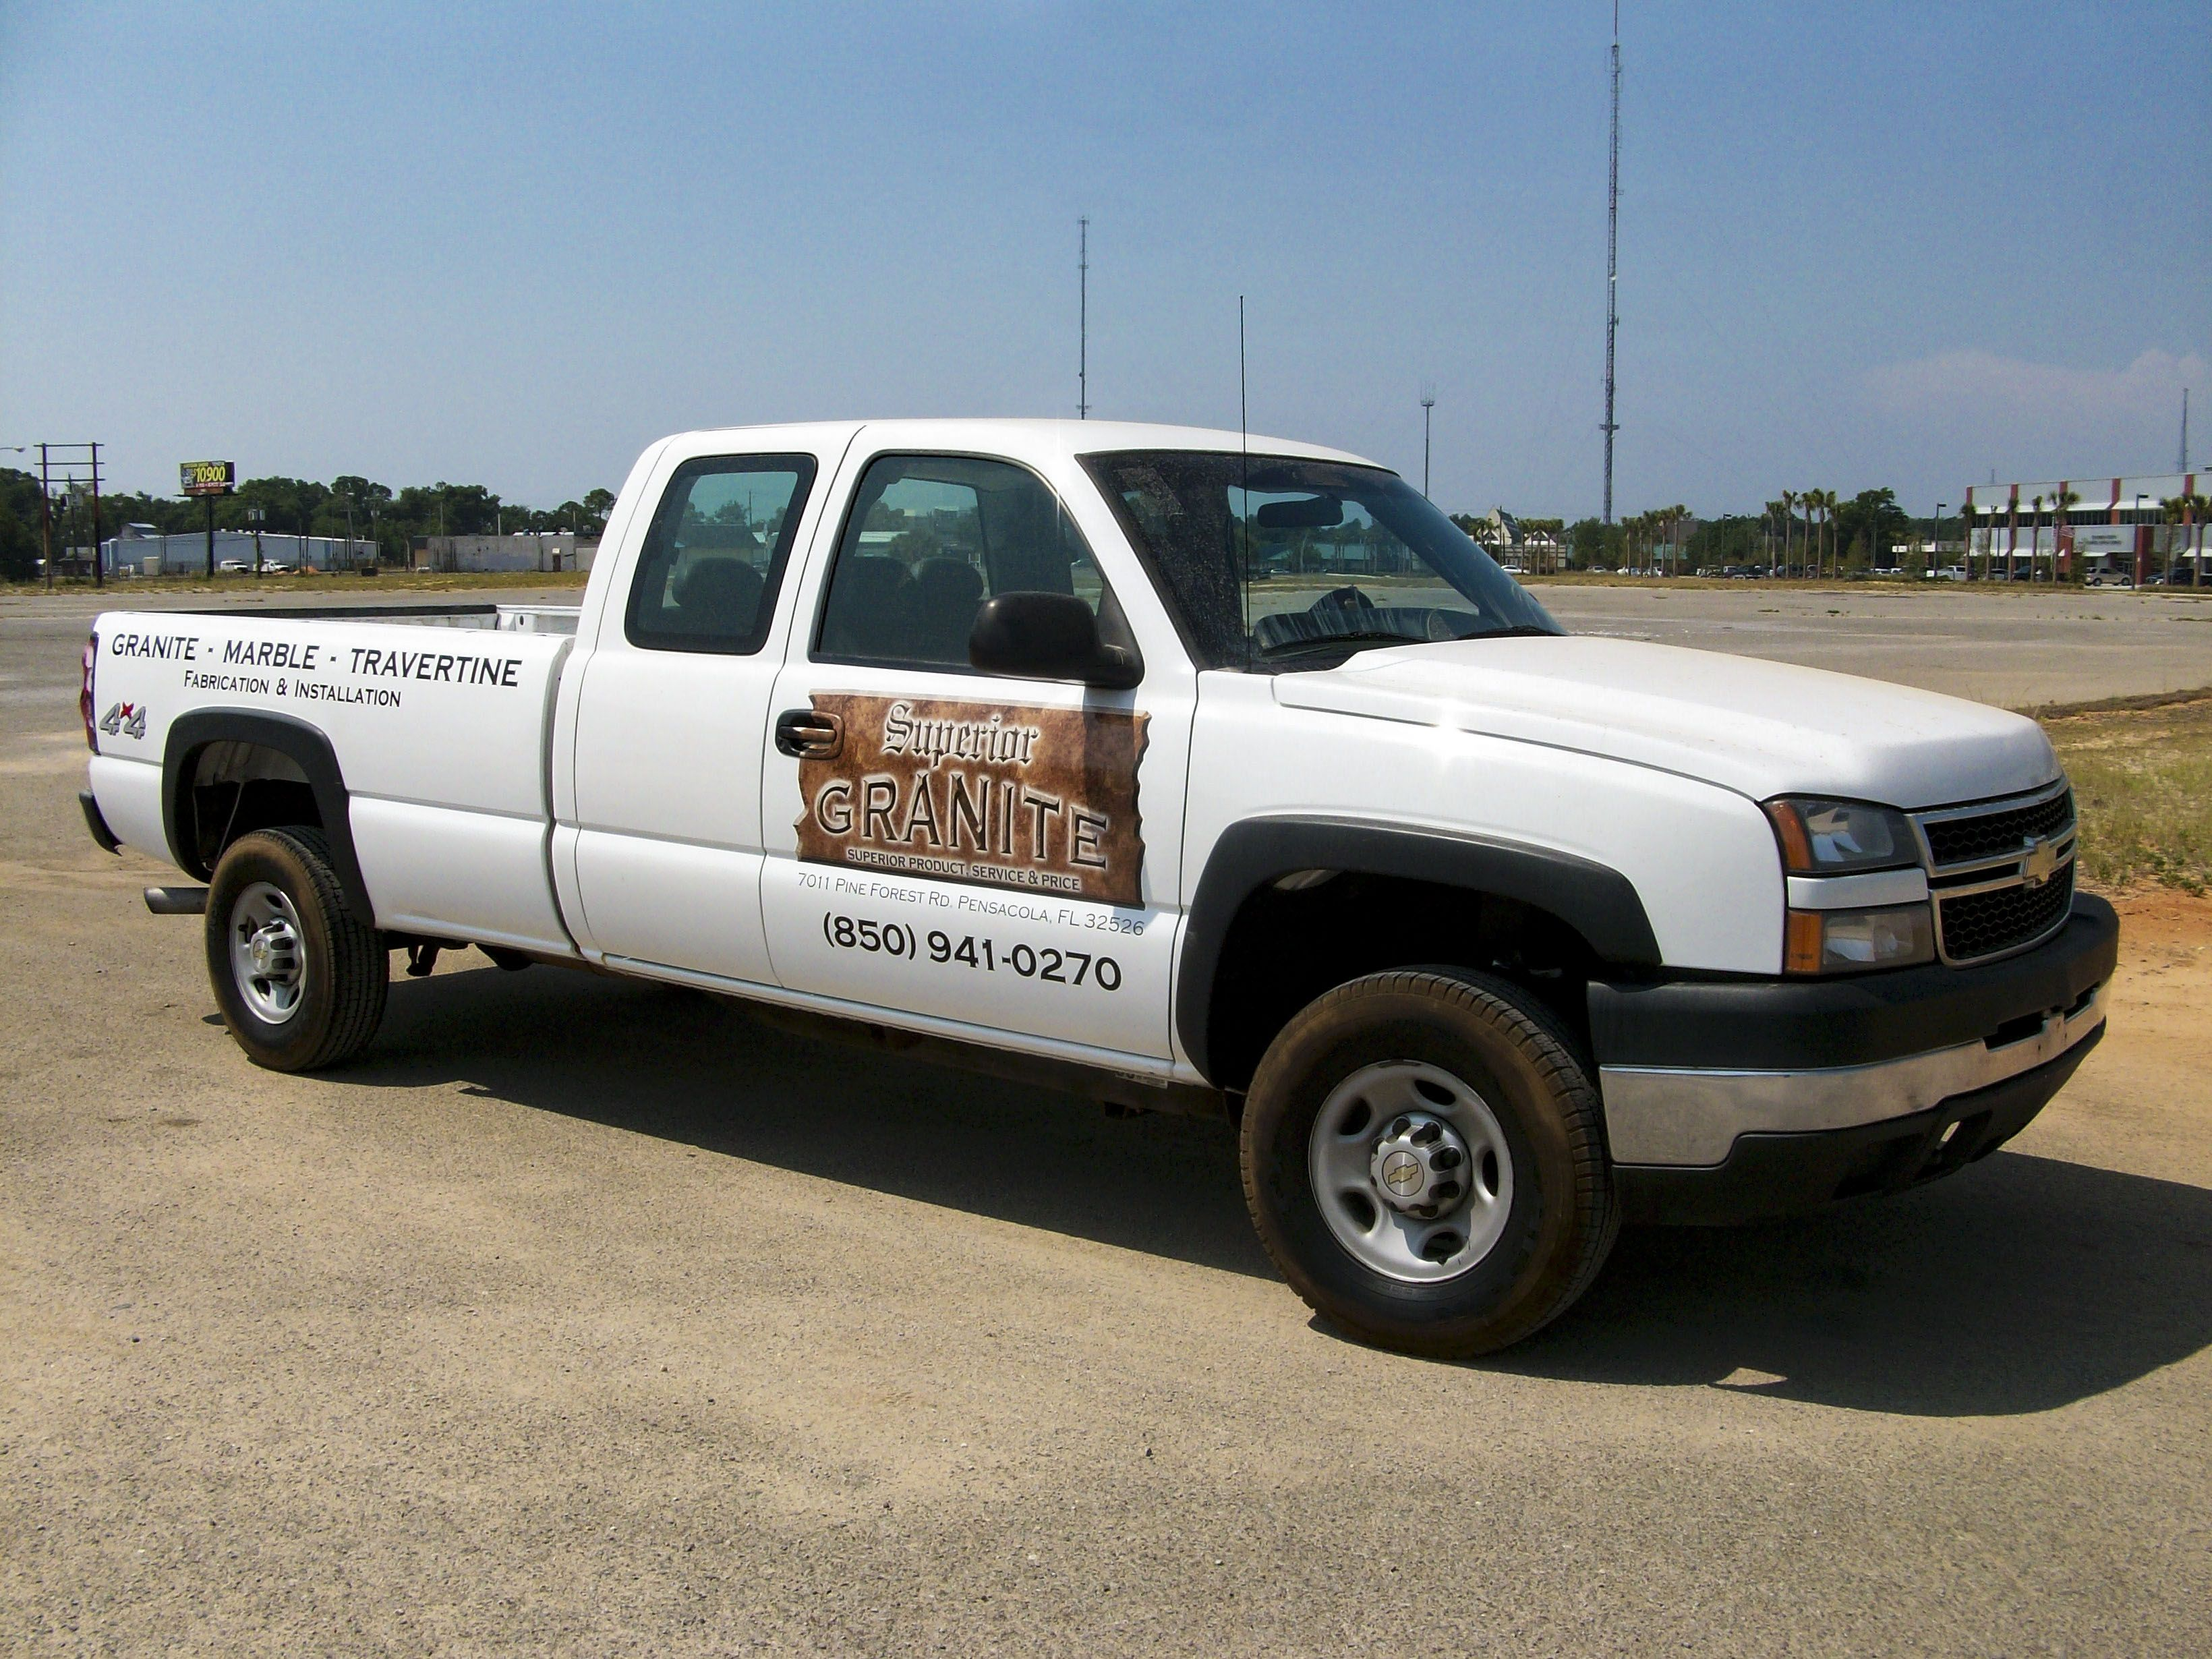 Truck graphics for Superior Granite by Pensacola Sign in Pensacola